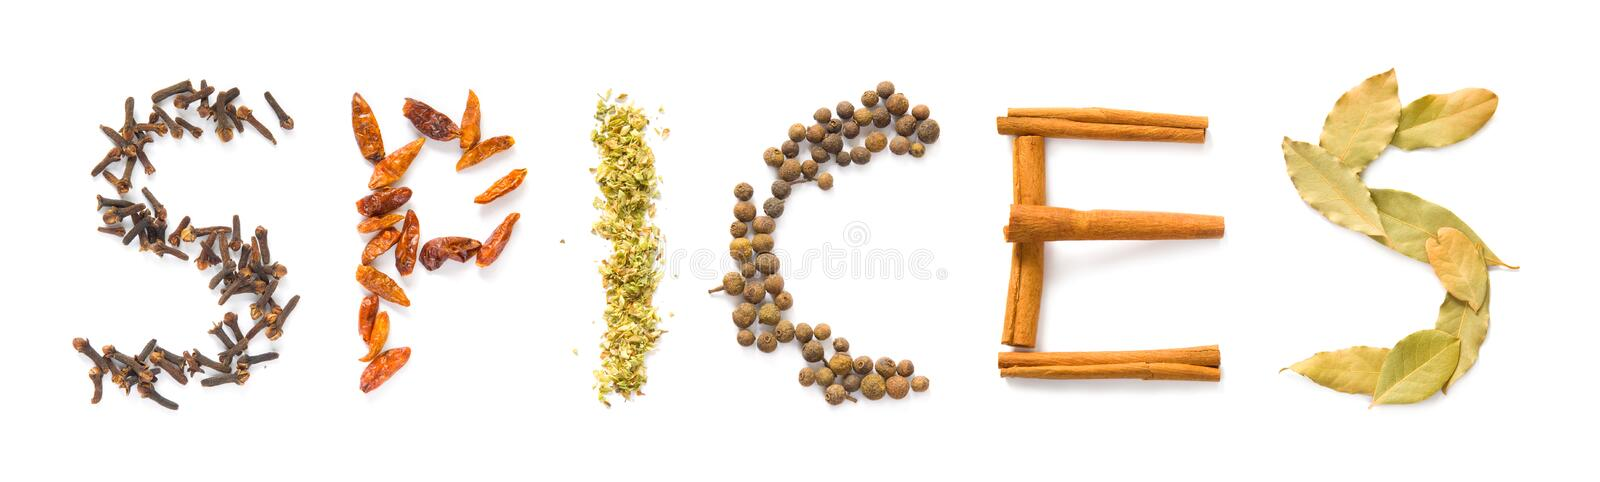 Download Spices stock image. Image of ingredient, pimento, laurel - 10920475